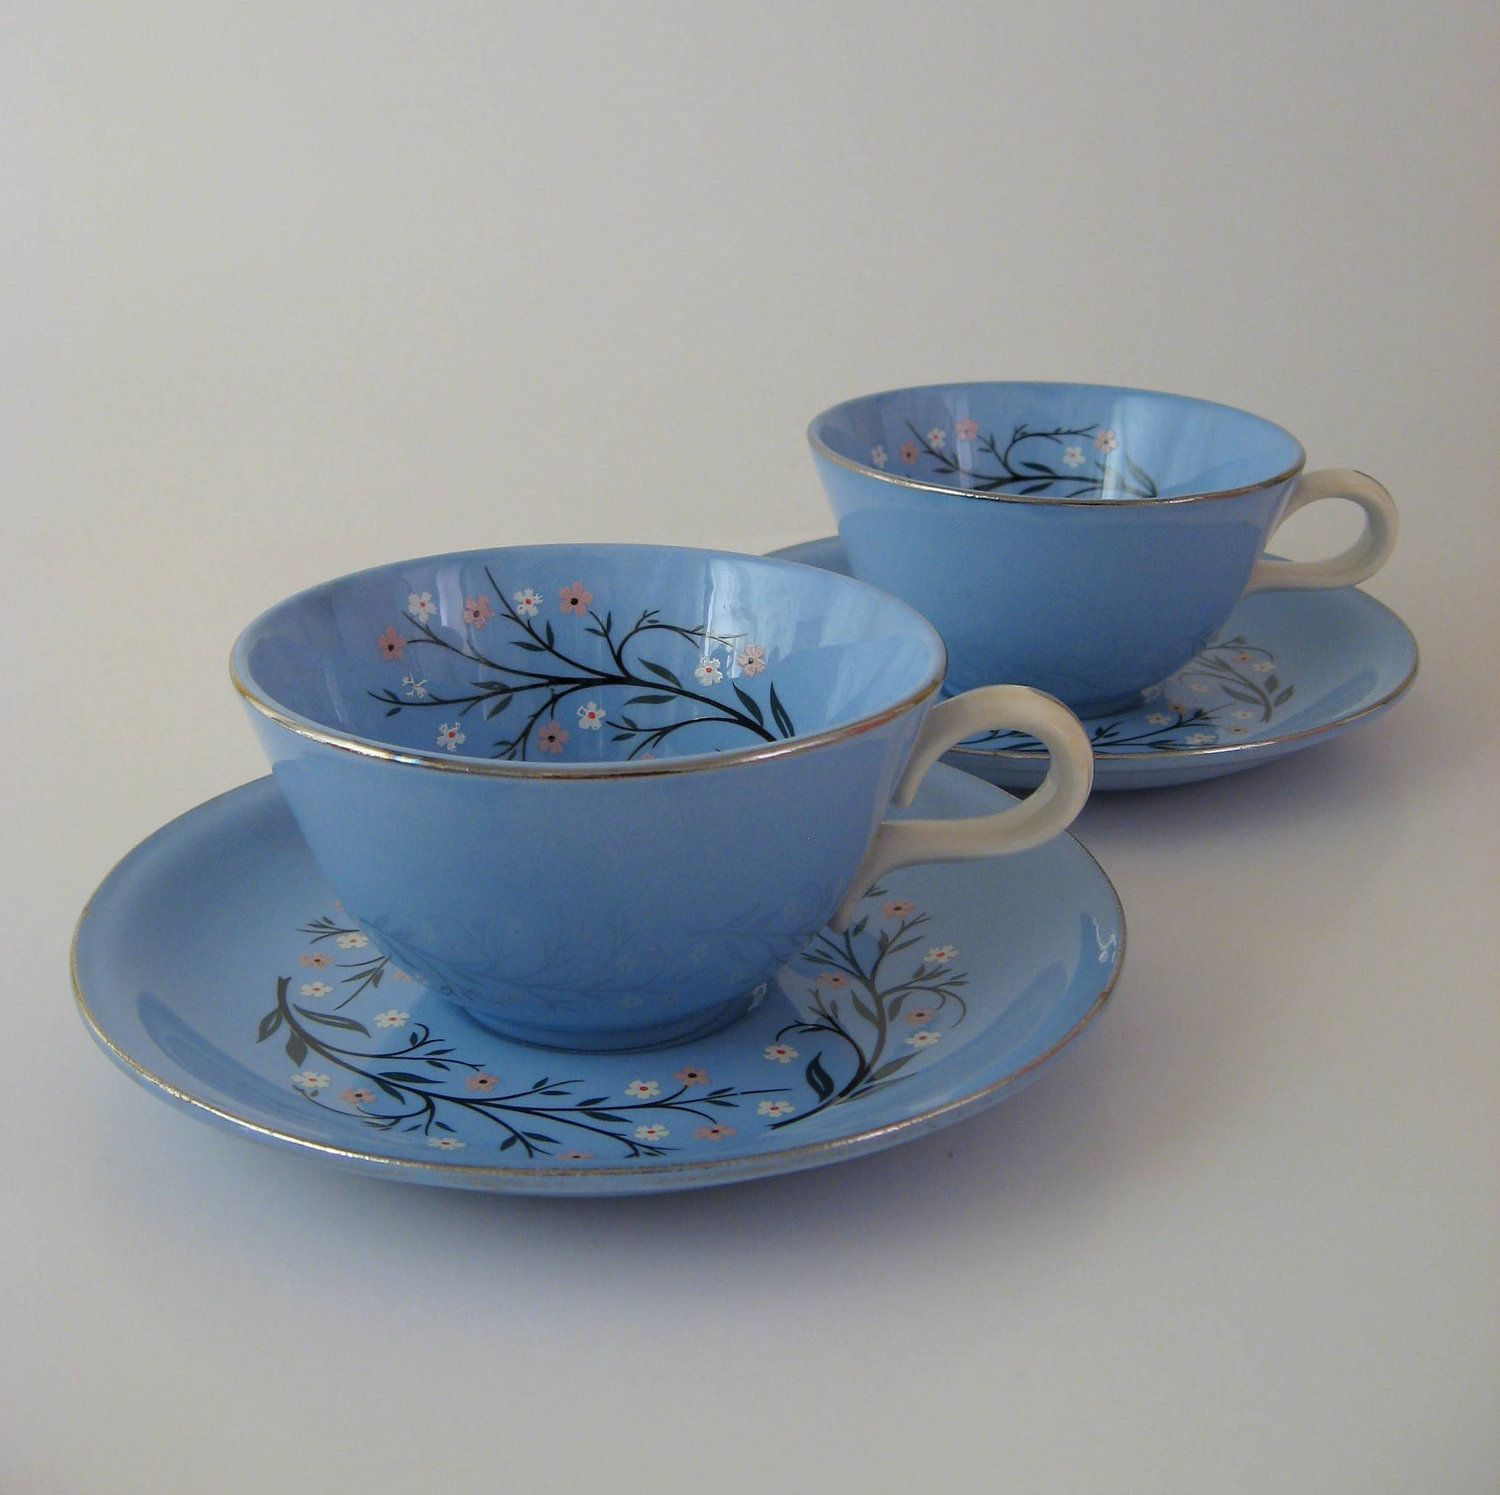 1950s Dishes: Vintage Cup And Saucer Set For 2, Homer Laughlin Bluemont